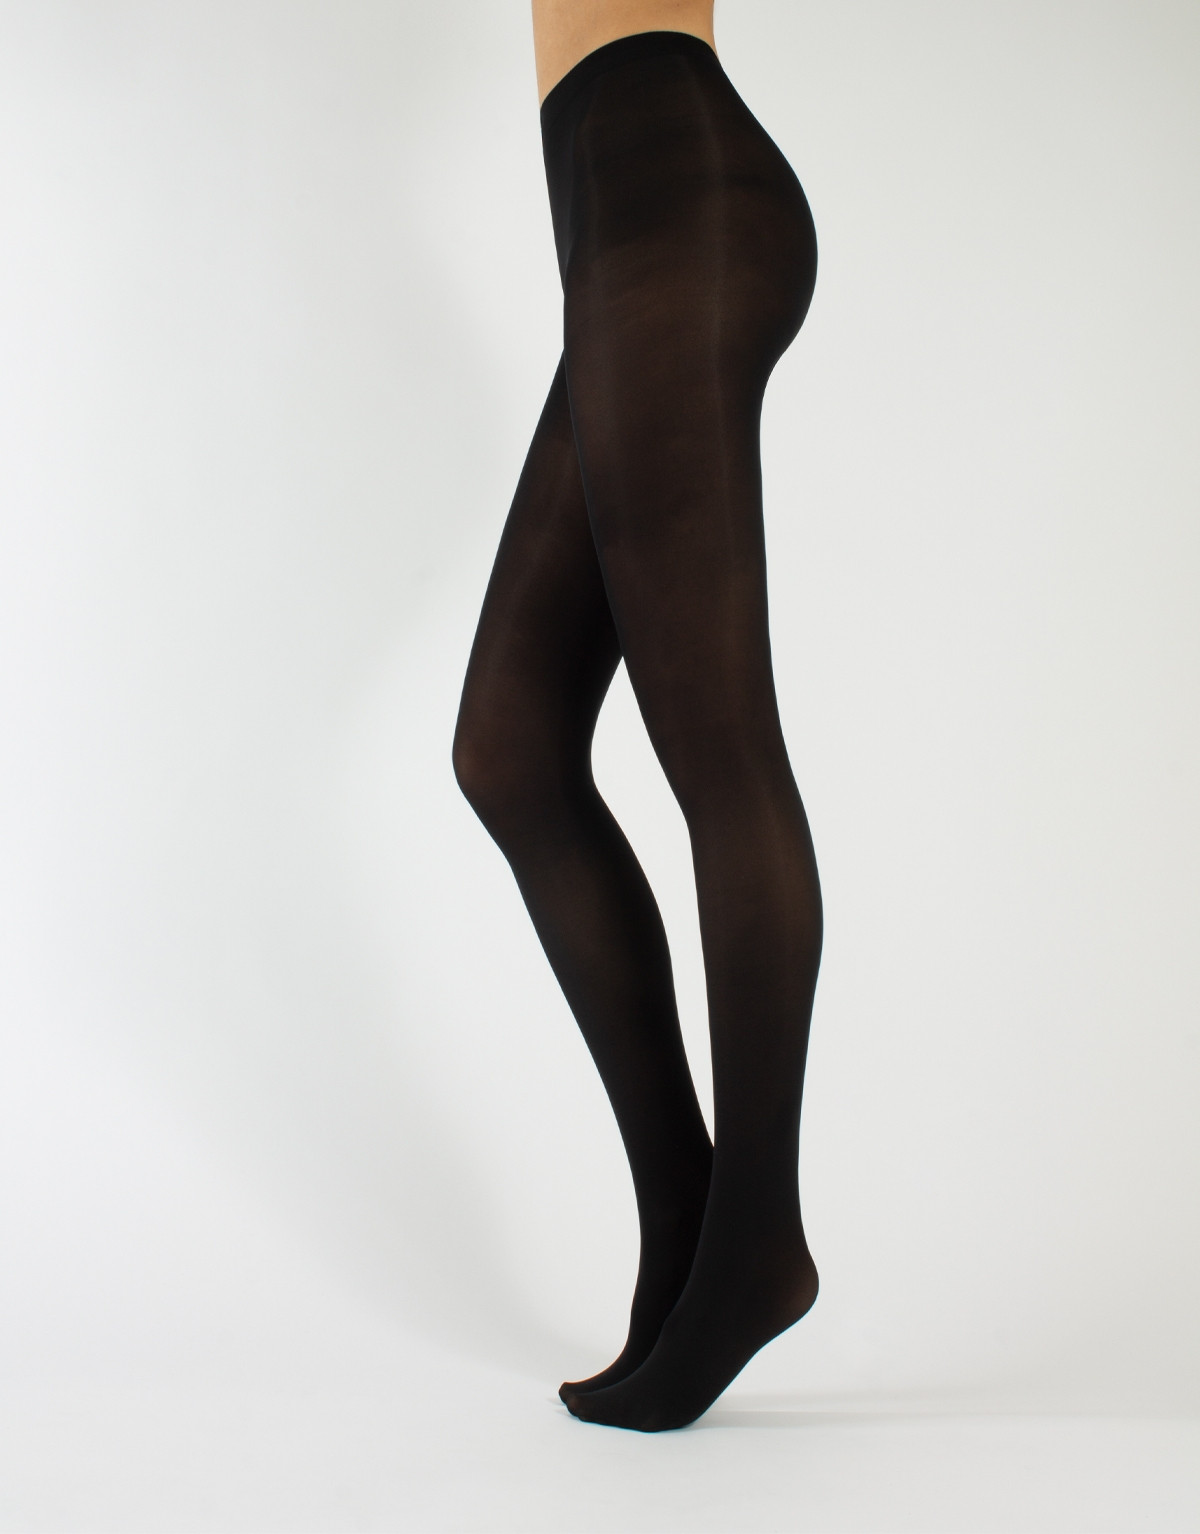 OPAQUE NUDE TIGHTS - 50 DEN